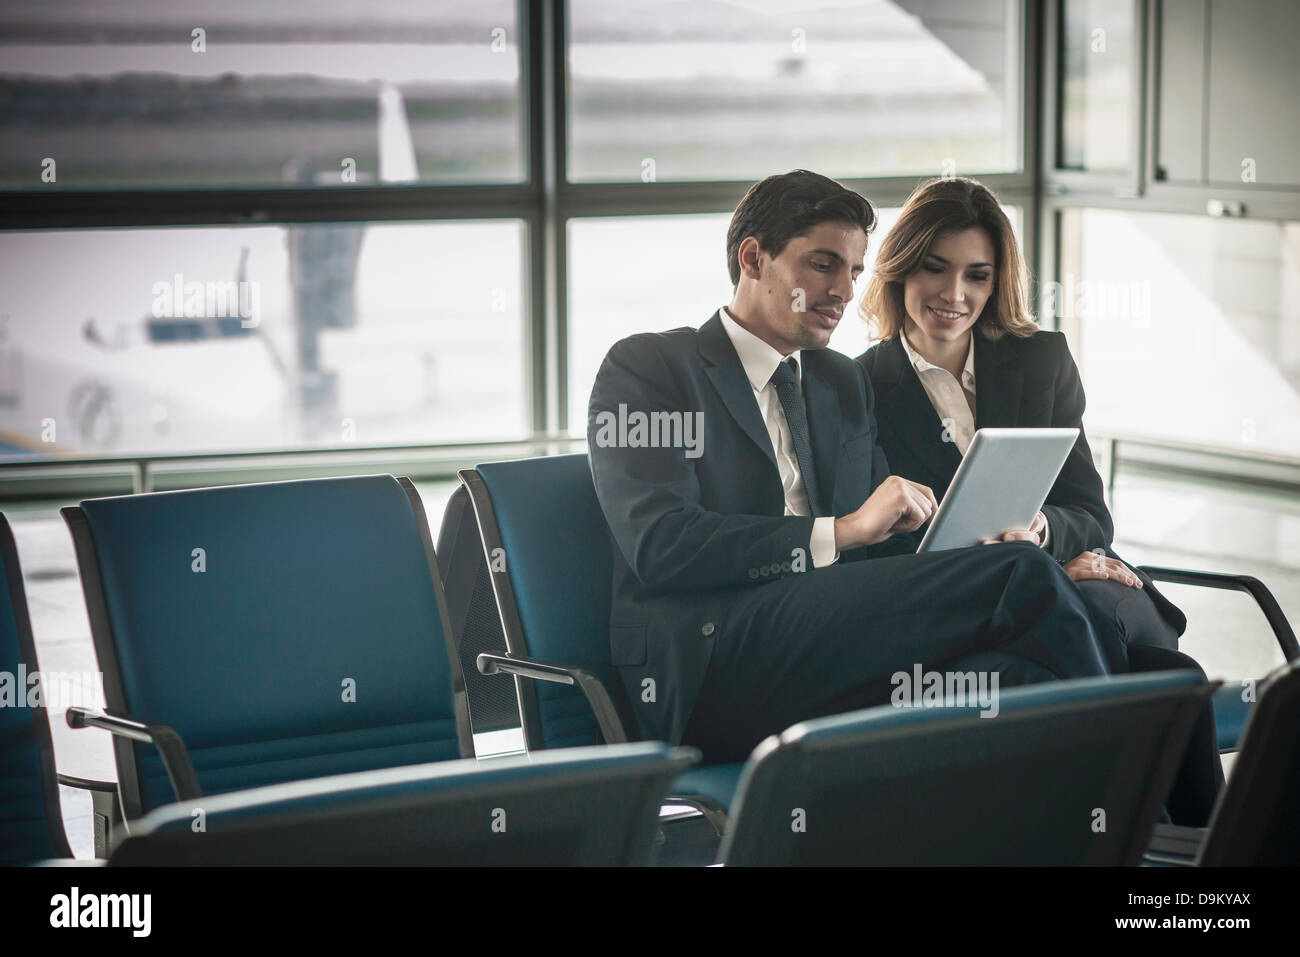 Businesspeople using digital tablet in airport departure lounge - Stock Image